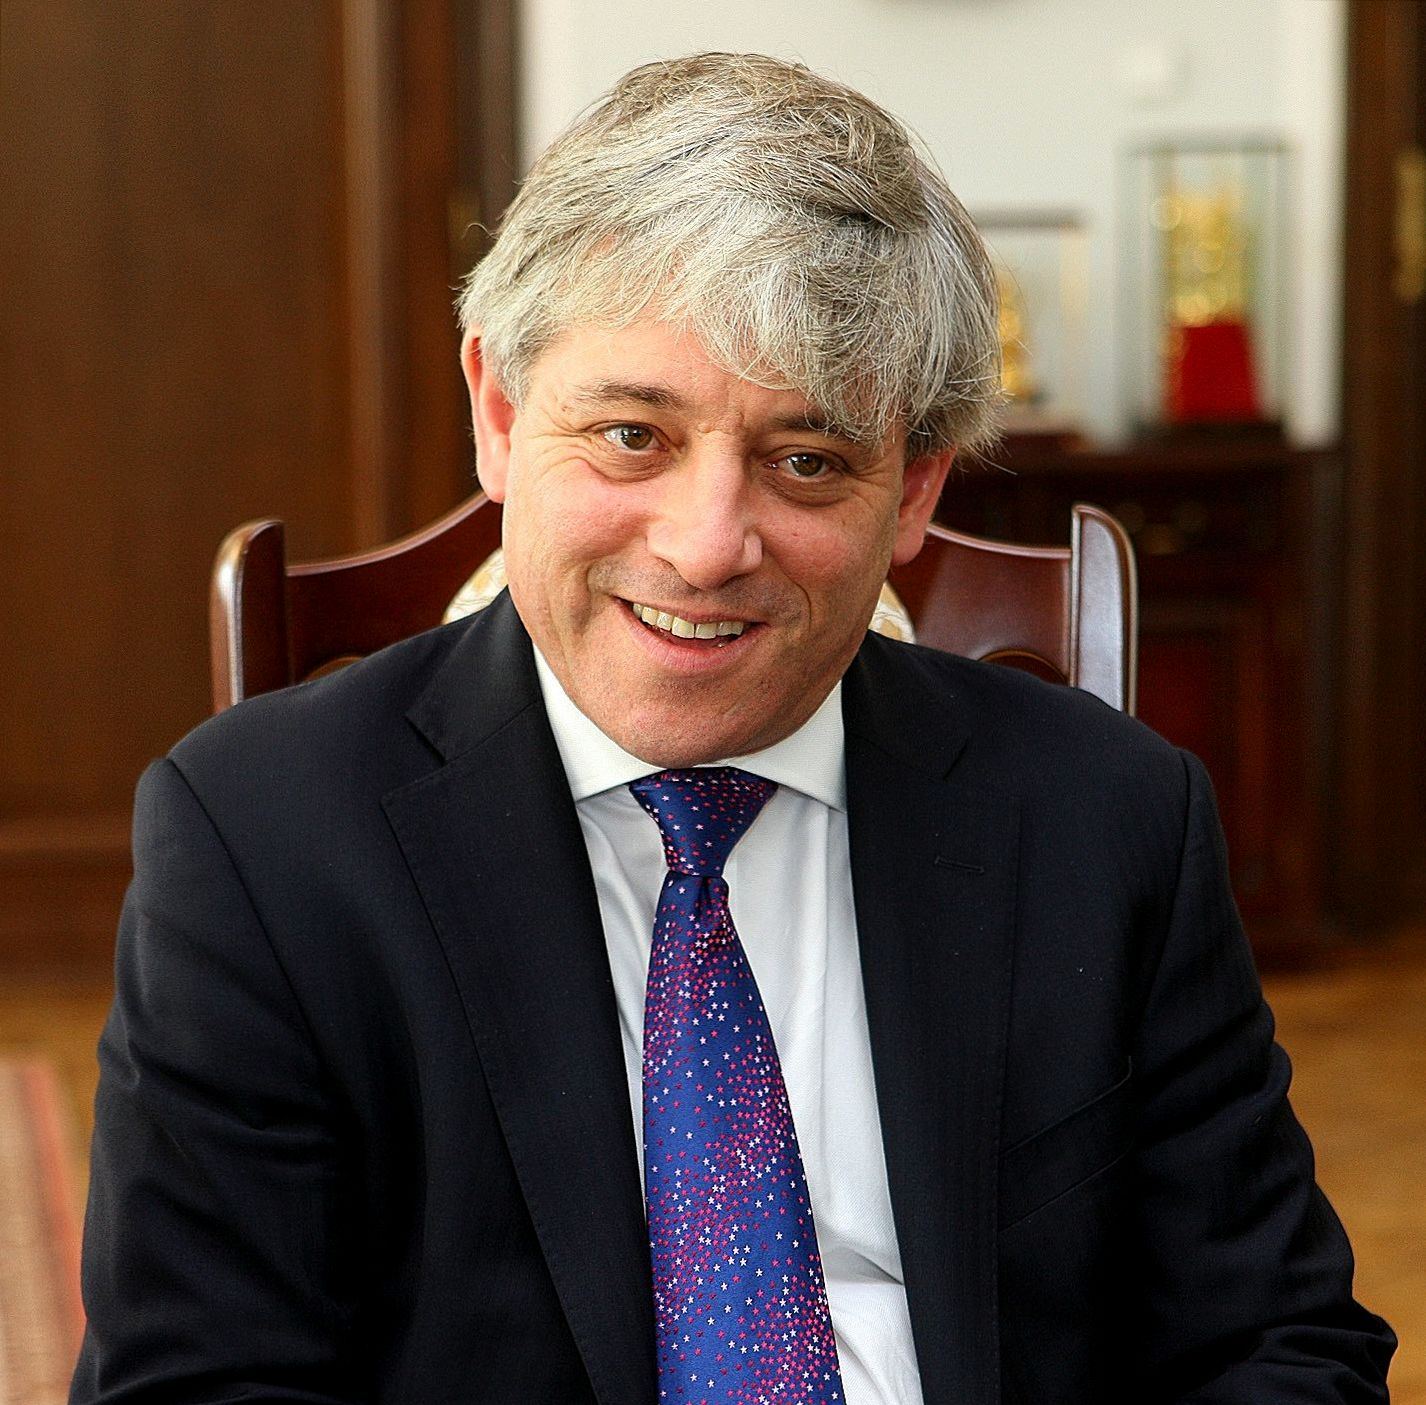 John_Bercow_Senate_of_Poland_01.JPG (1426×1405)